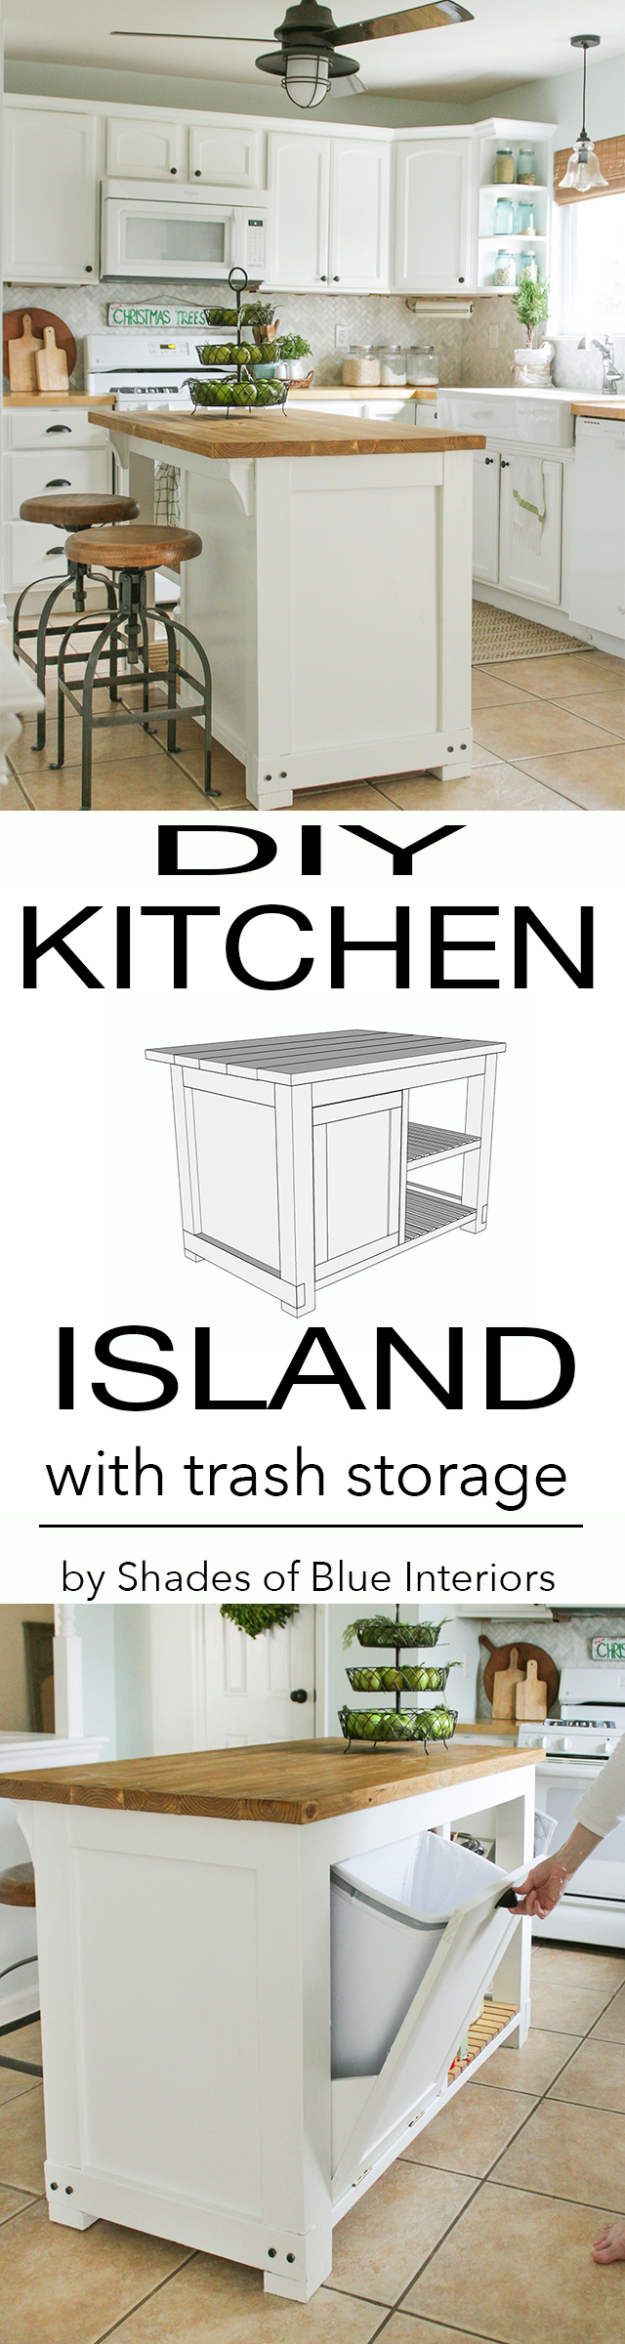 DIY Kitchen Makeover Ideas - DIY Kitchen Island With Trash Storage - Cheap Projects Projects You Can Make On A Budget - Cabinets, Counter Tops, Paint Tutorials, Islands and Faux Granite. Tutorials and Step by Step Instructions